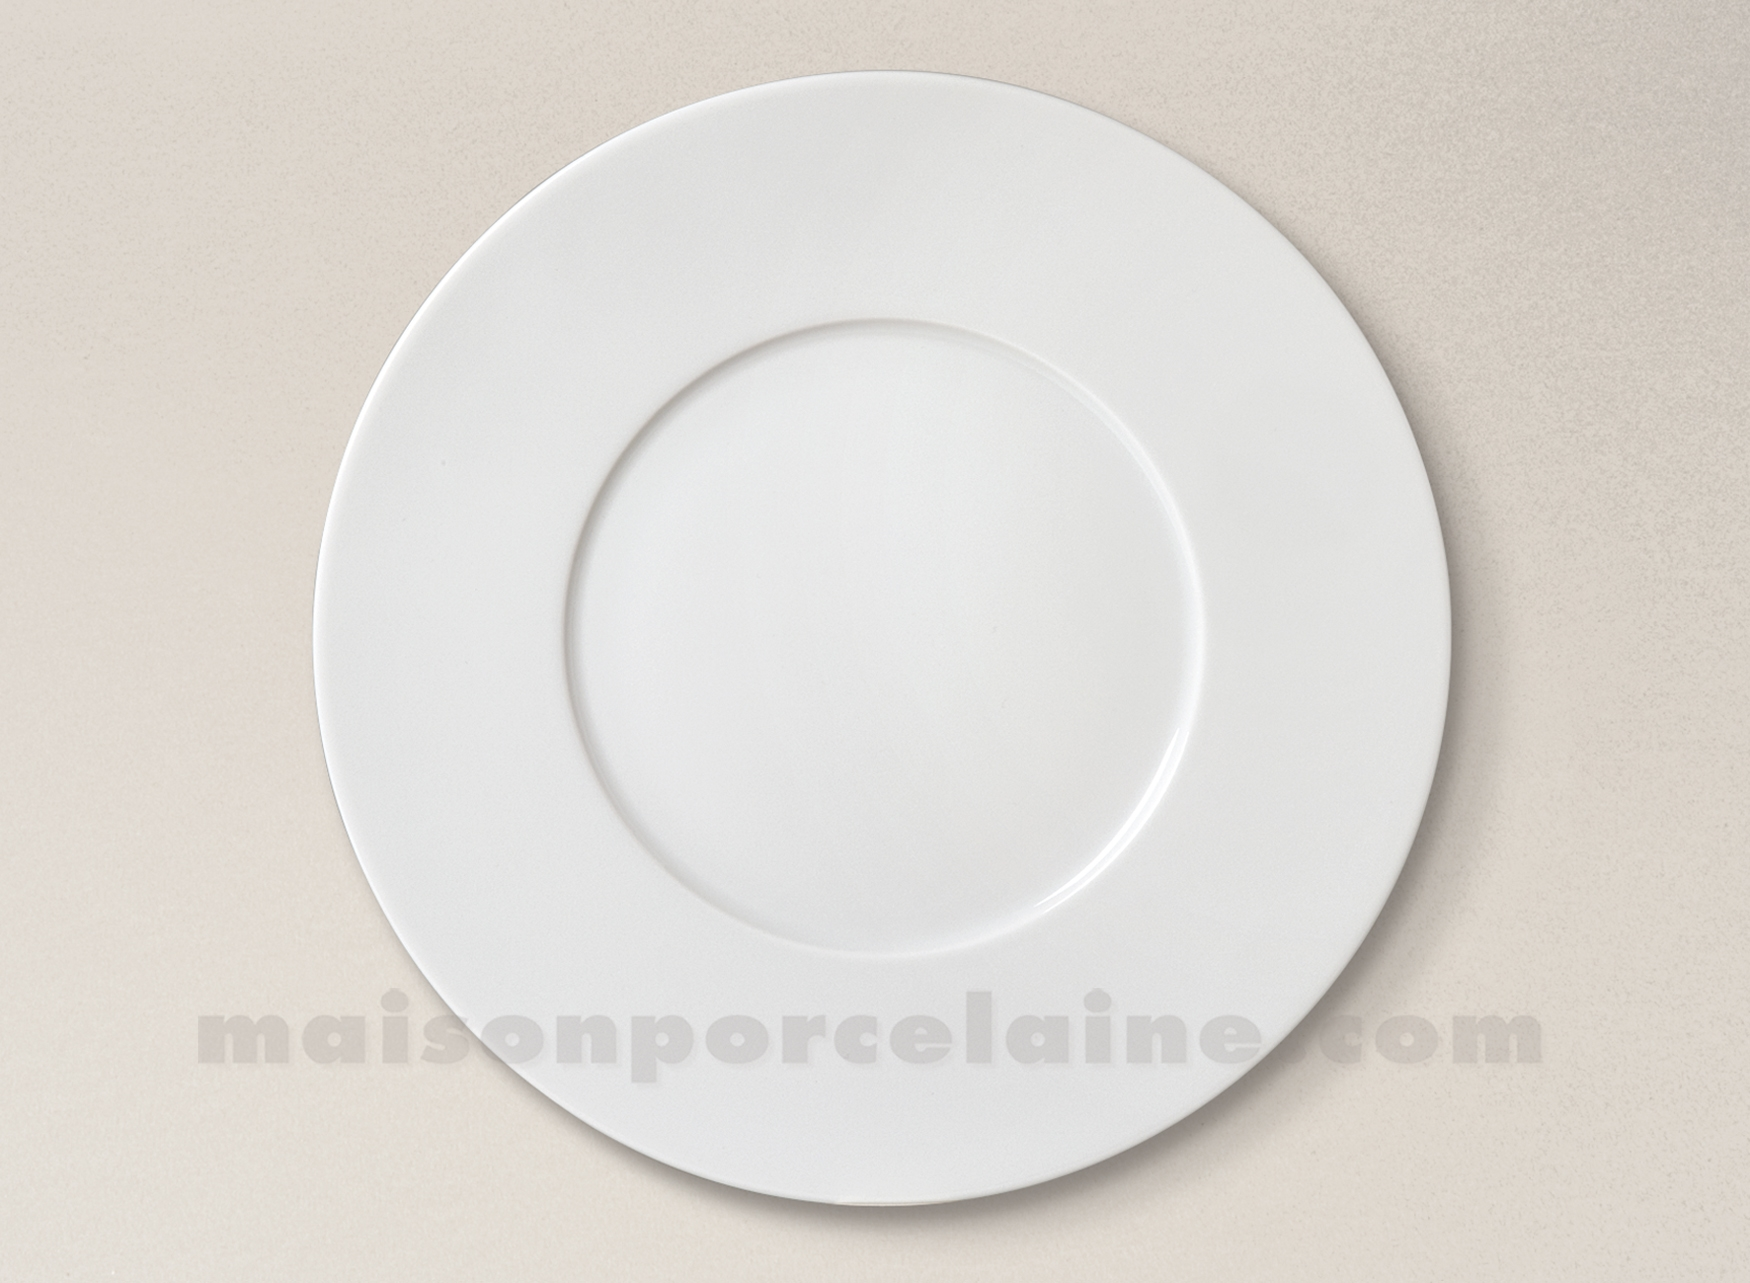 assiette plate porcelaine blanche zen d29 maison de la. Black Bedroom Furniture Sets. Home Design Ideas